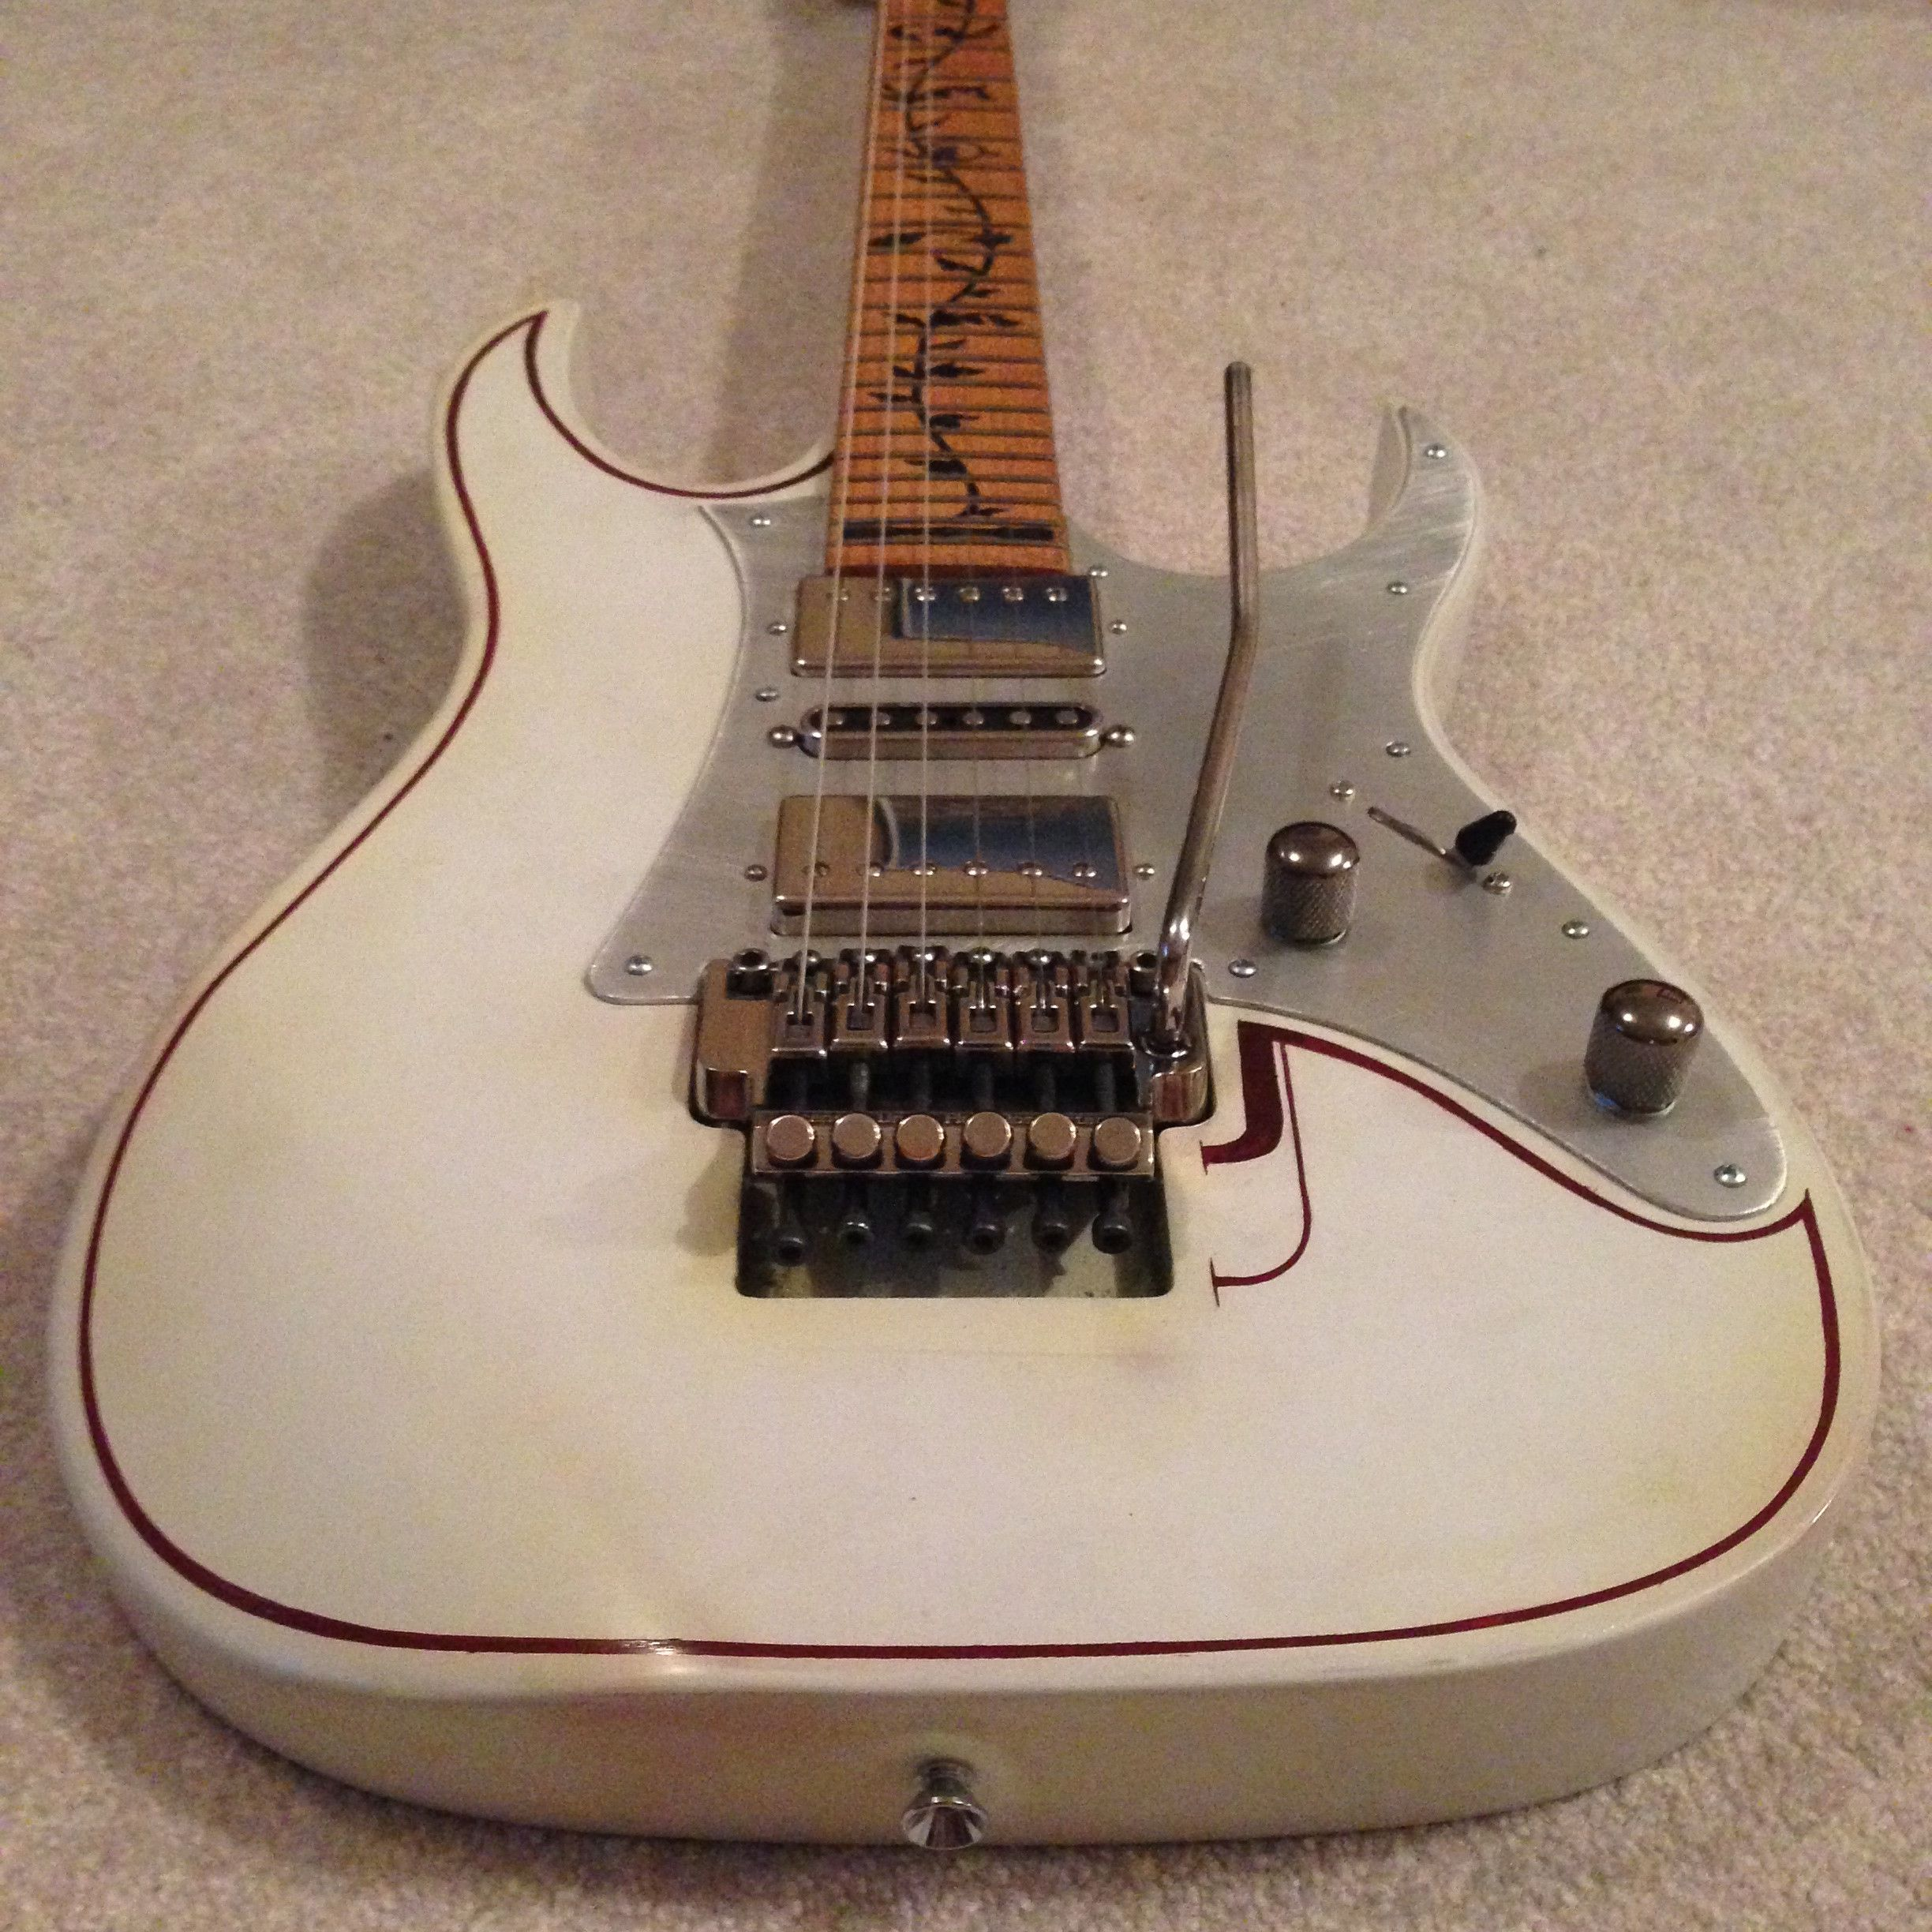 Great Ibanez 3 Way Switch Wiring Tall Two Humbuckers 5 Way Switch Square Gibson Pickup Wiring Colors Bulldog Security System Old 3 Humbucker Strat DarkStrat Super Switch Wiring Ibanez RG550 Upgrades And Mods | Ibanez, Guitars And Van Halen